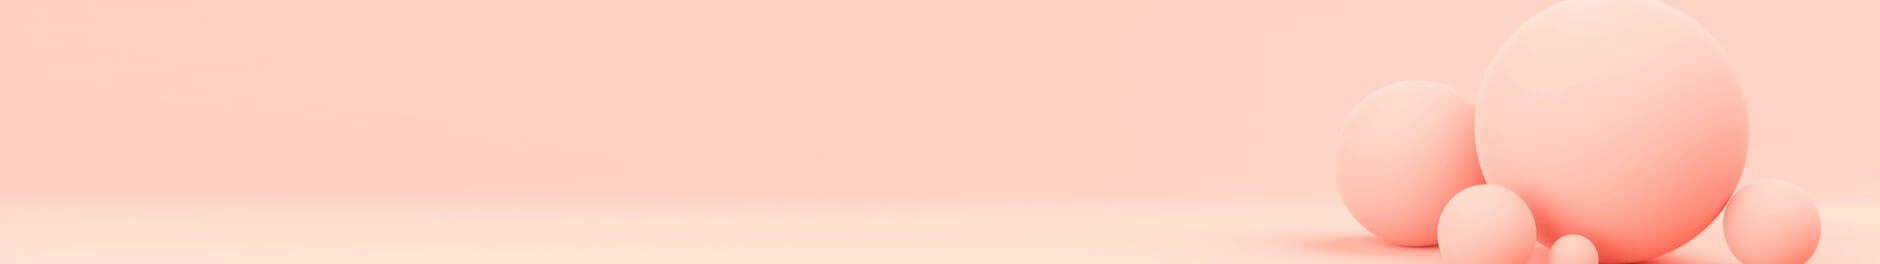 peach circles on peach background